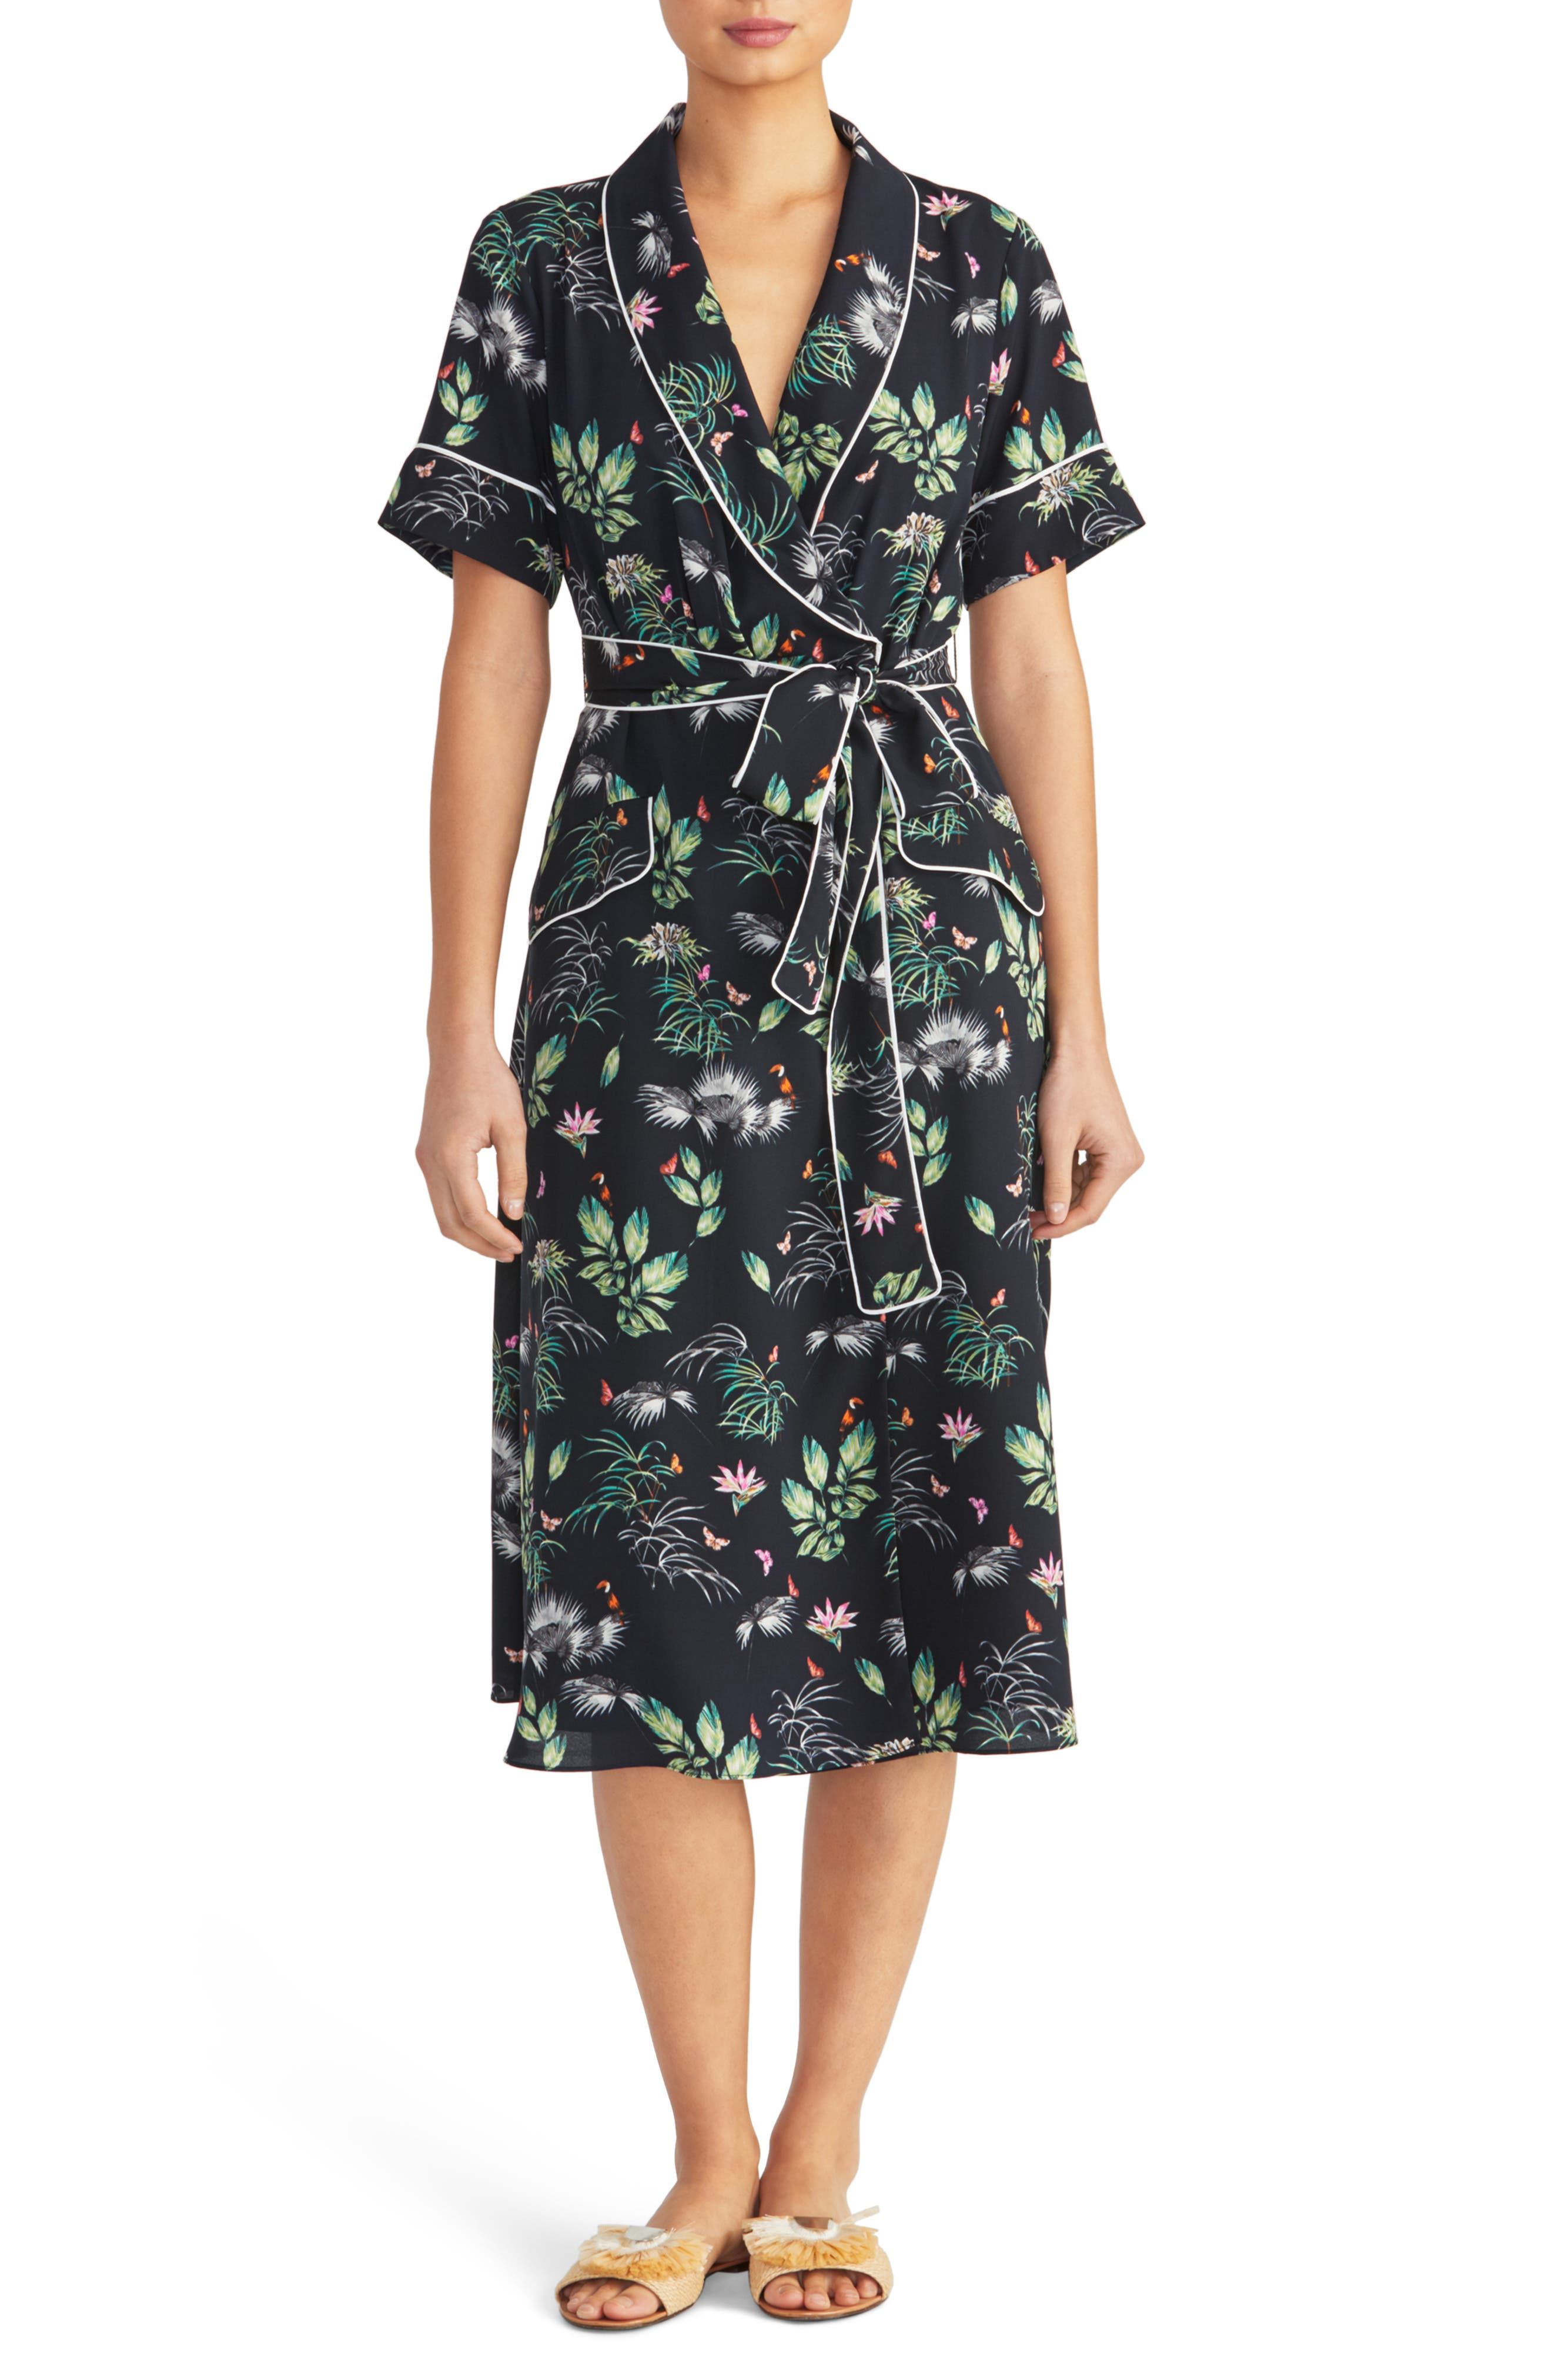 1930s Day Dresses, Afternoon Dresses History Womens Rachel Roy Collection Floral Print Tipped Wrap Dress $89.40 AT vintagedancer.com